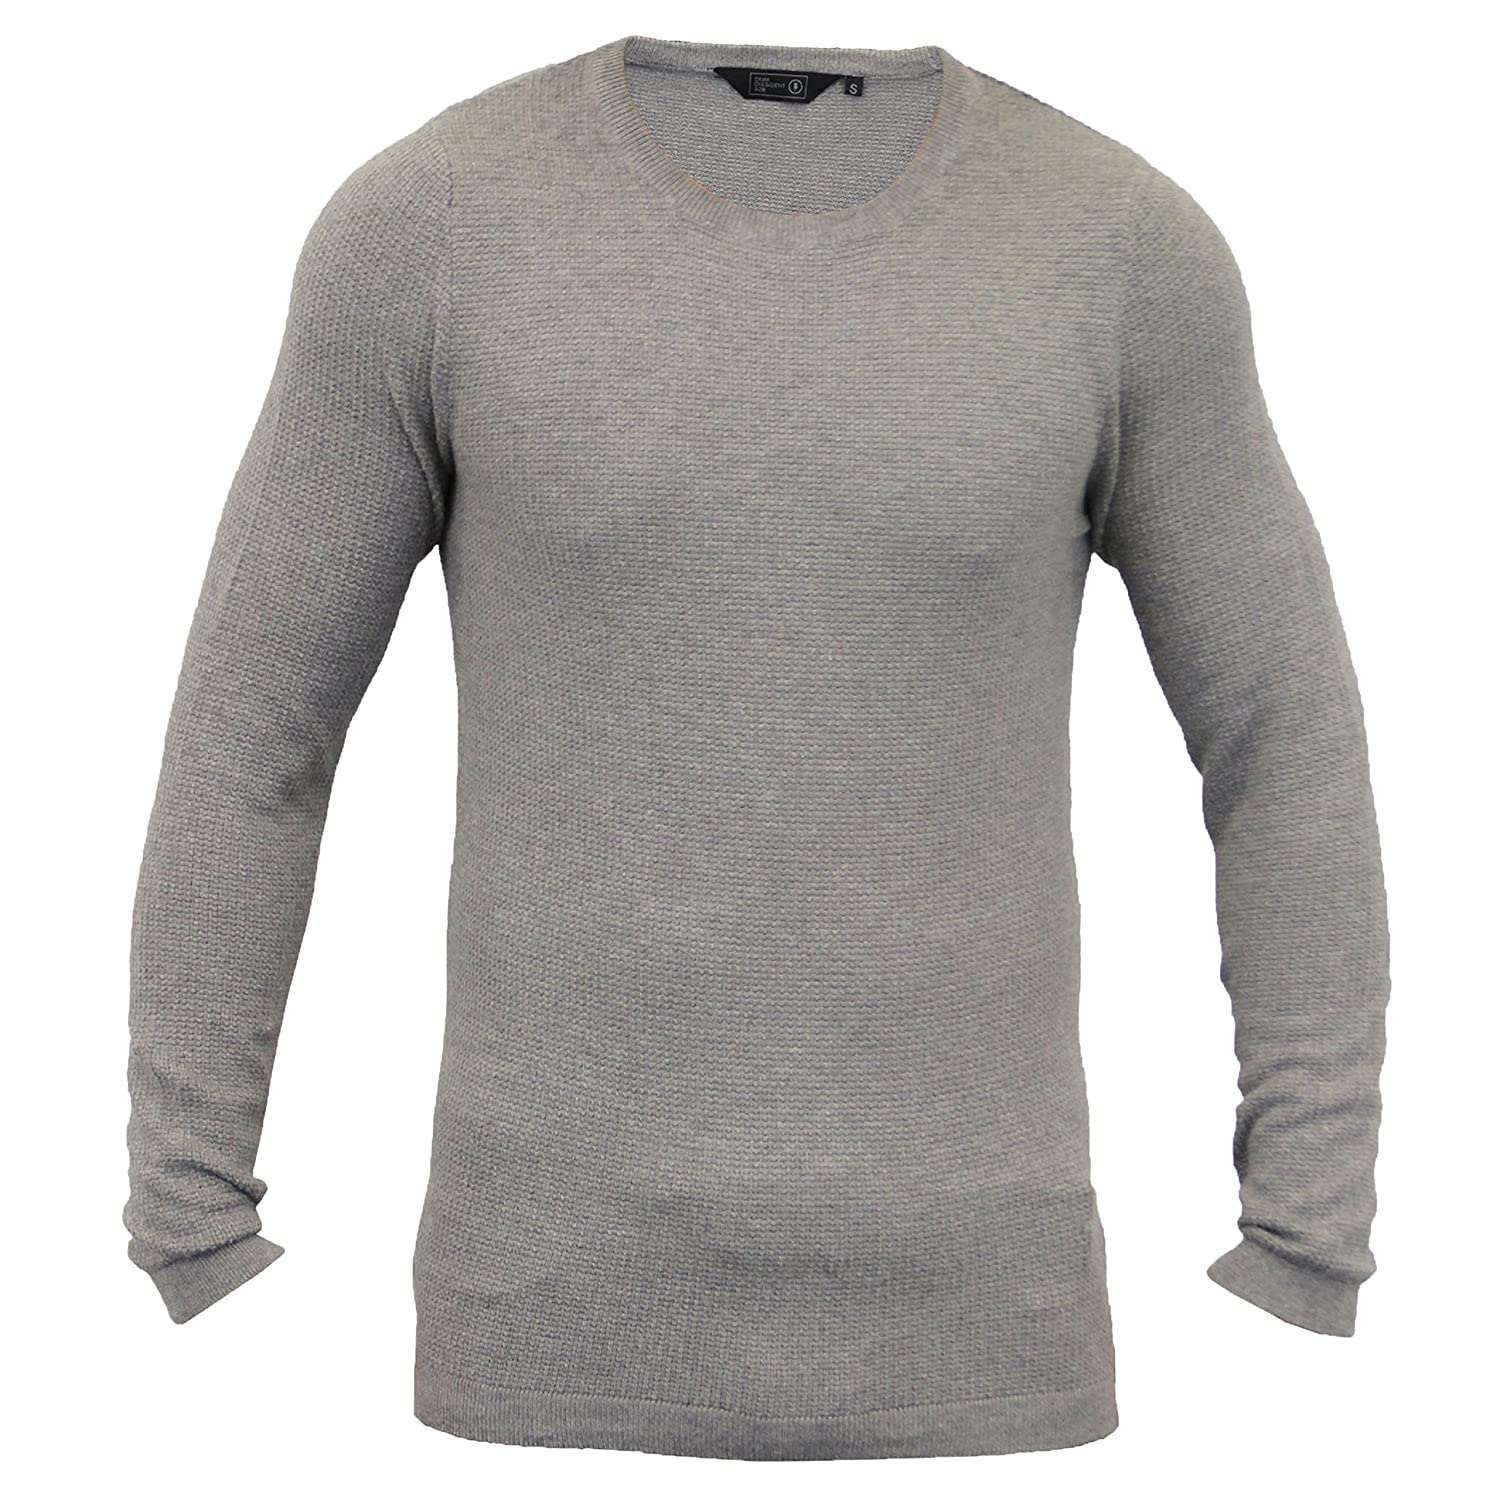 mens wool blend cardigans Dissident knitted sweater casual fashion winter new